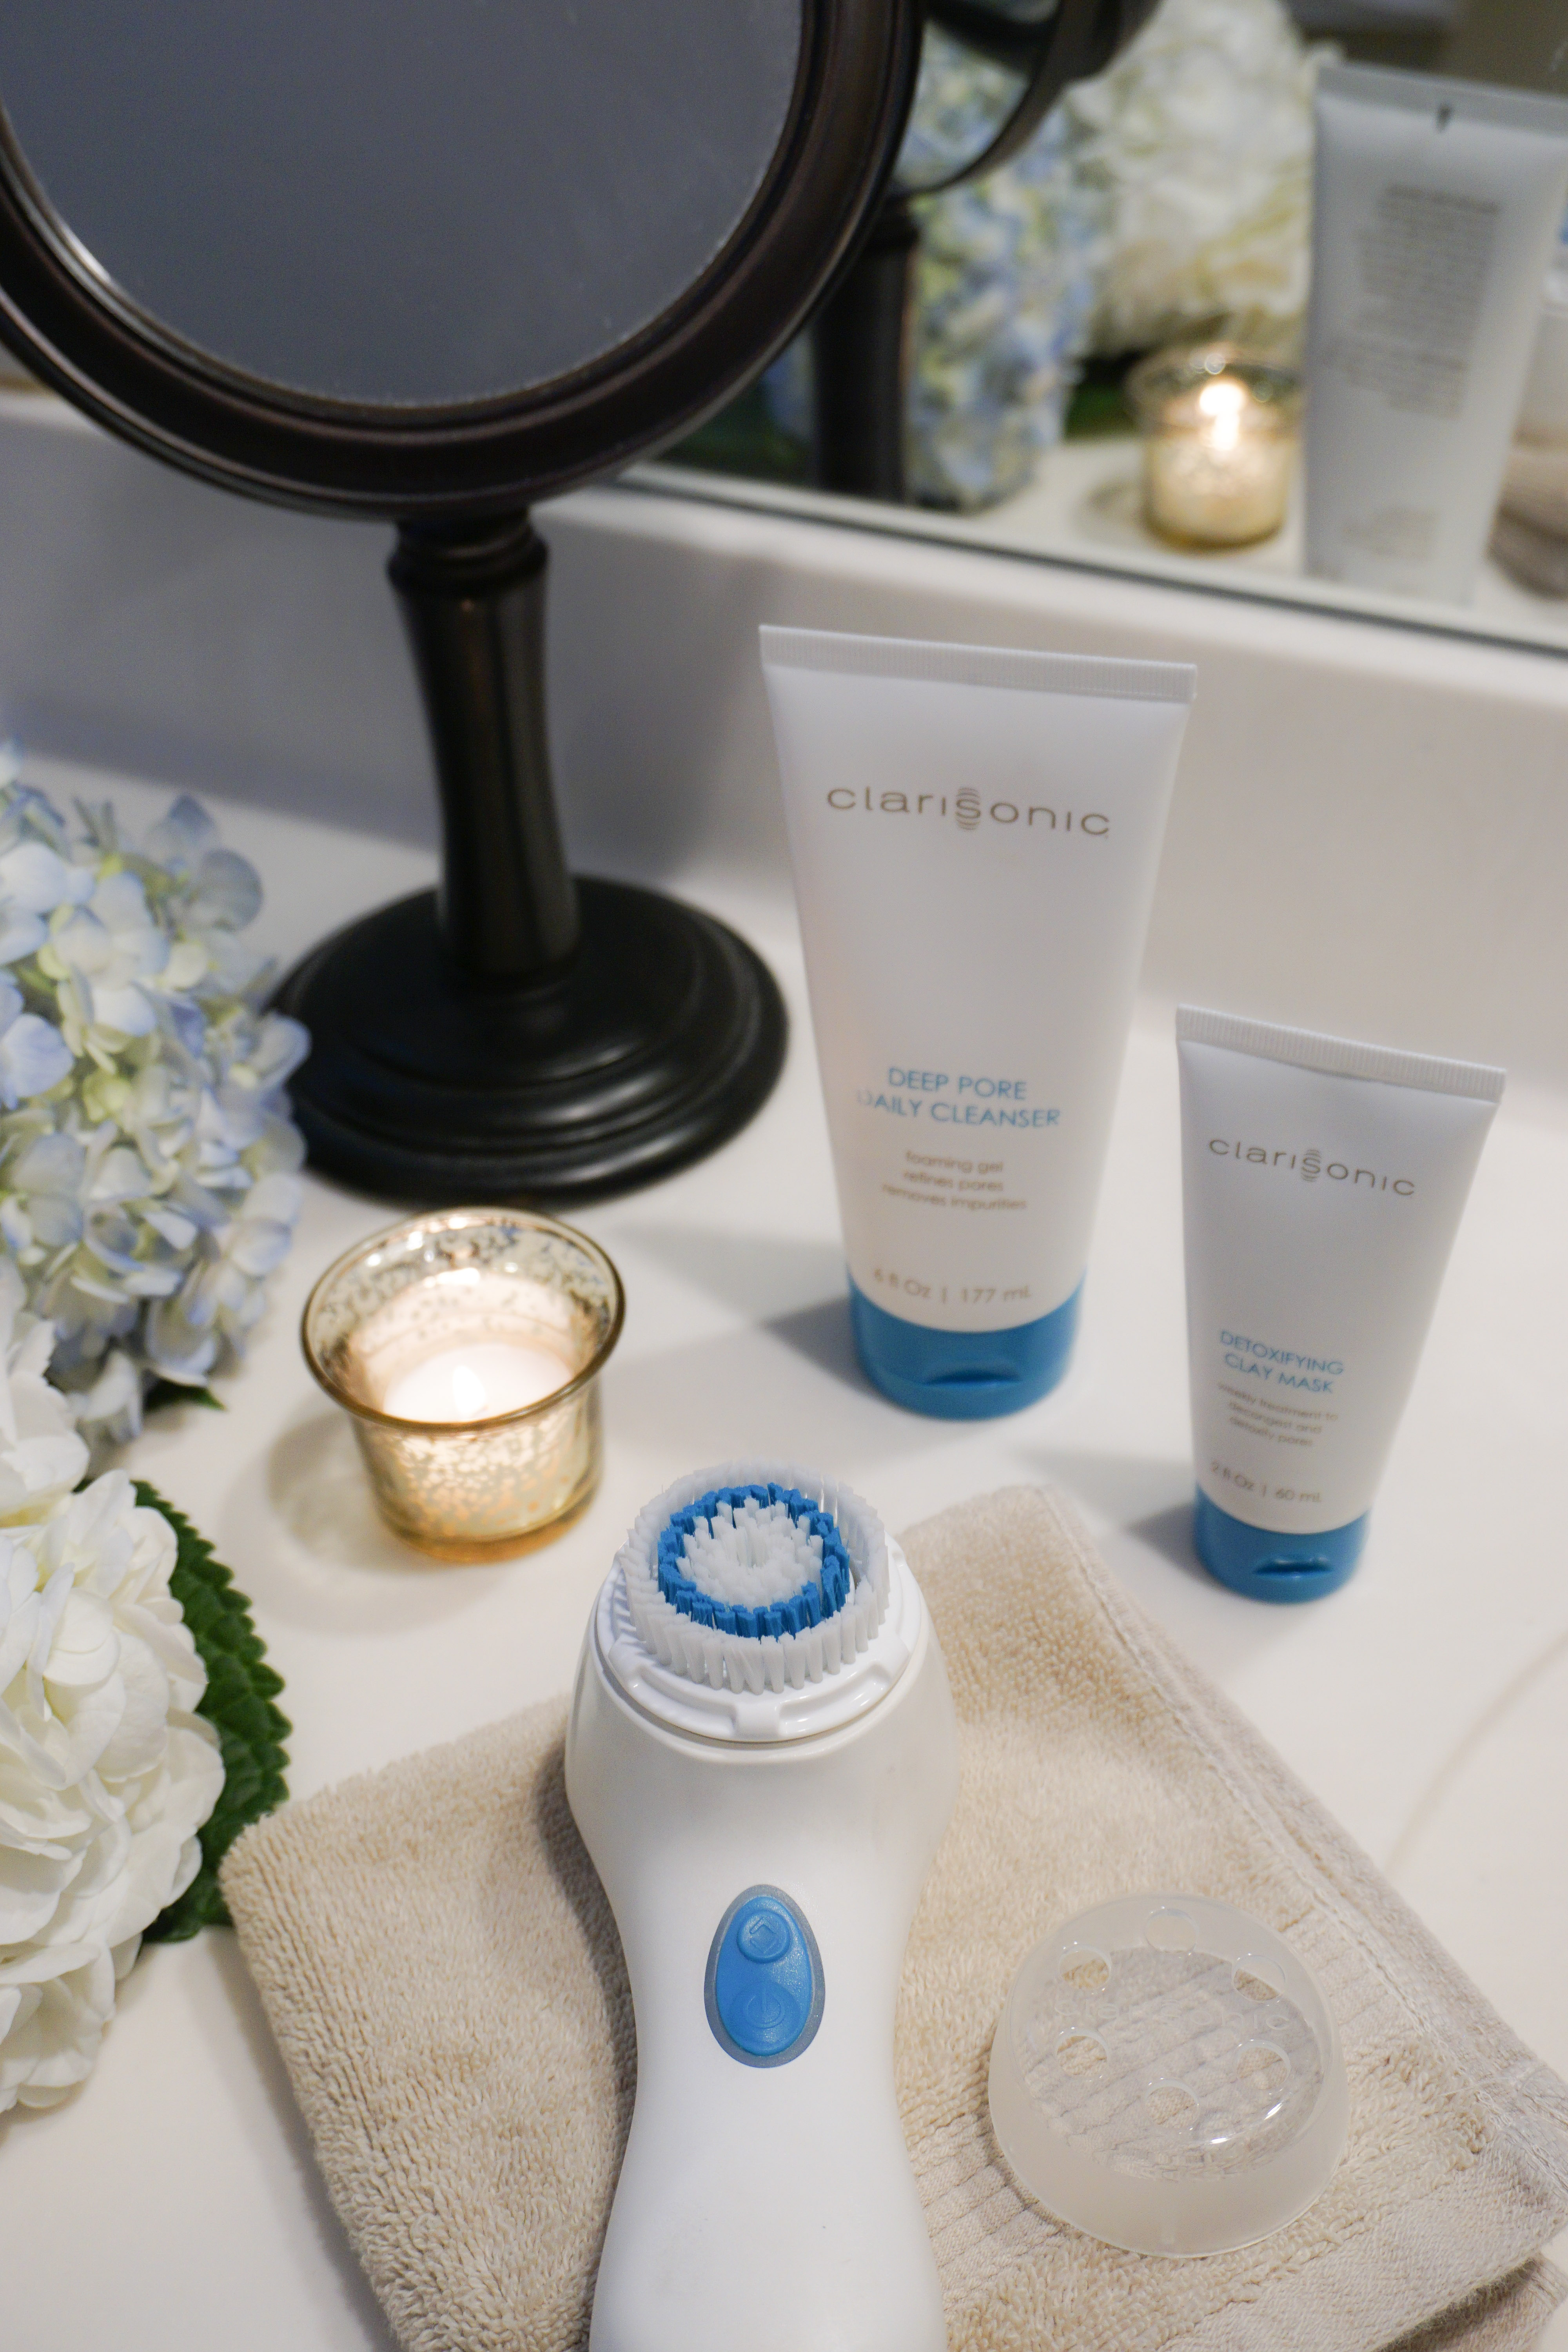 SKIN CARE WITH CLARISONIC